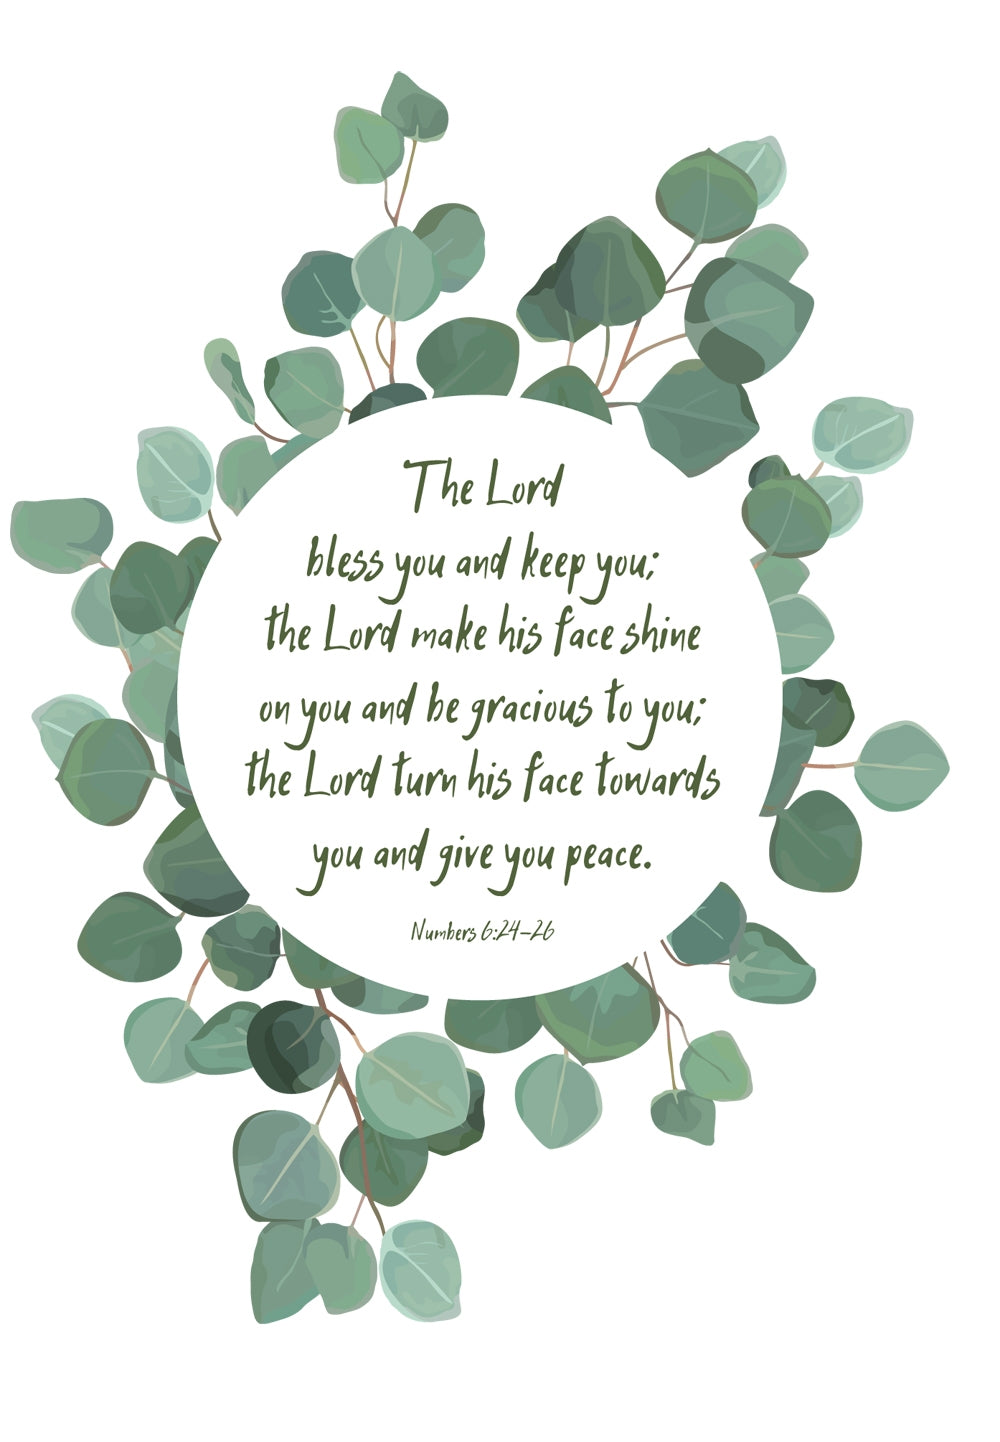 The Lord Bless You -  Leaves Std Card Gloss (6 Pack)The Lord Bless You -  Leaves Std Card Gloss (6 Pack)